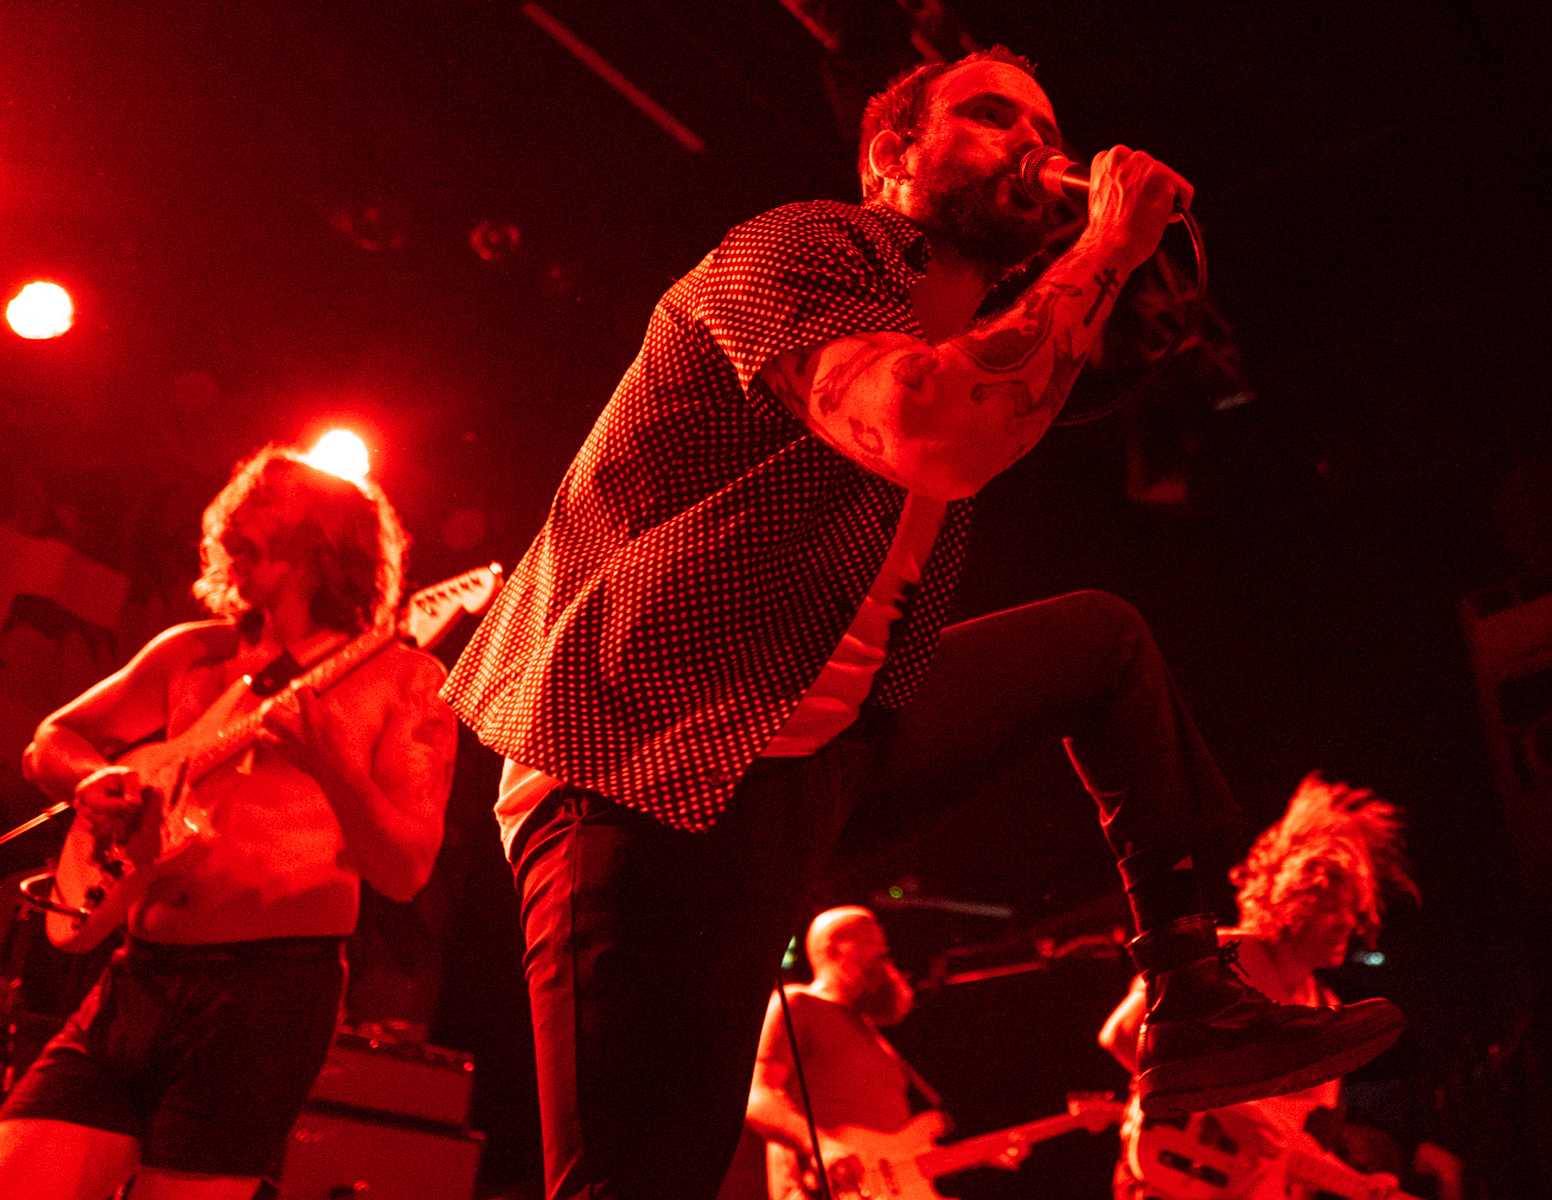 Idles_FirstAvenue_080319_Chris_Goyette_26